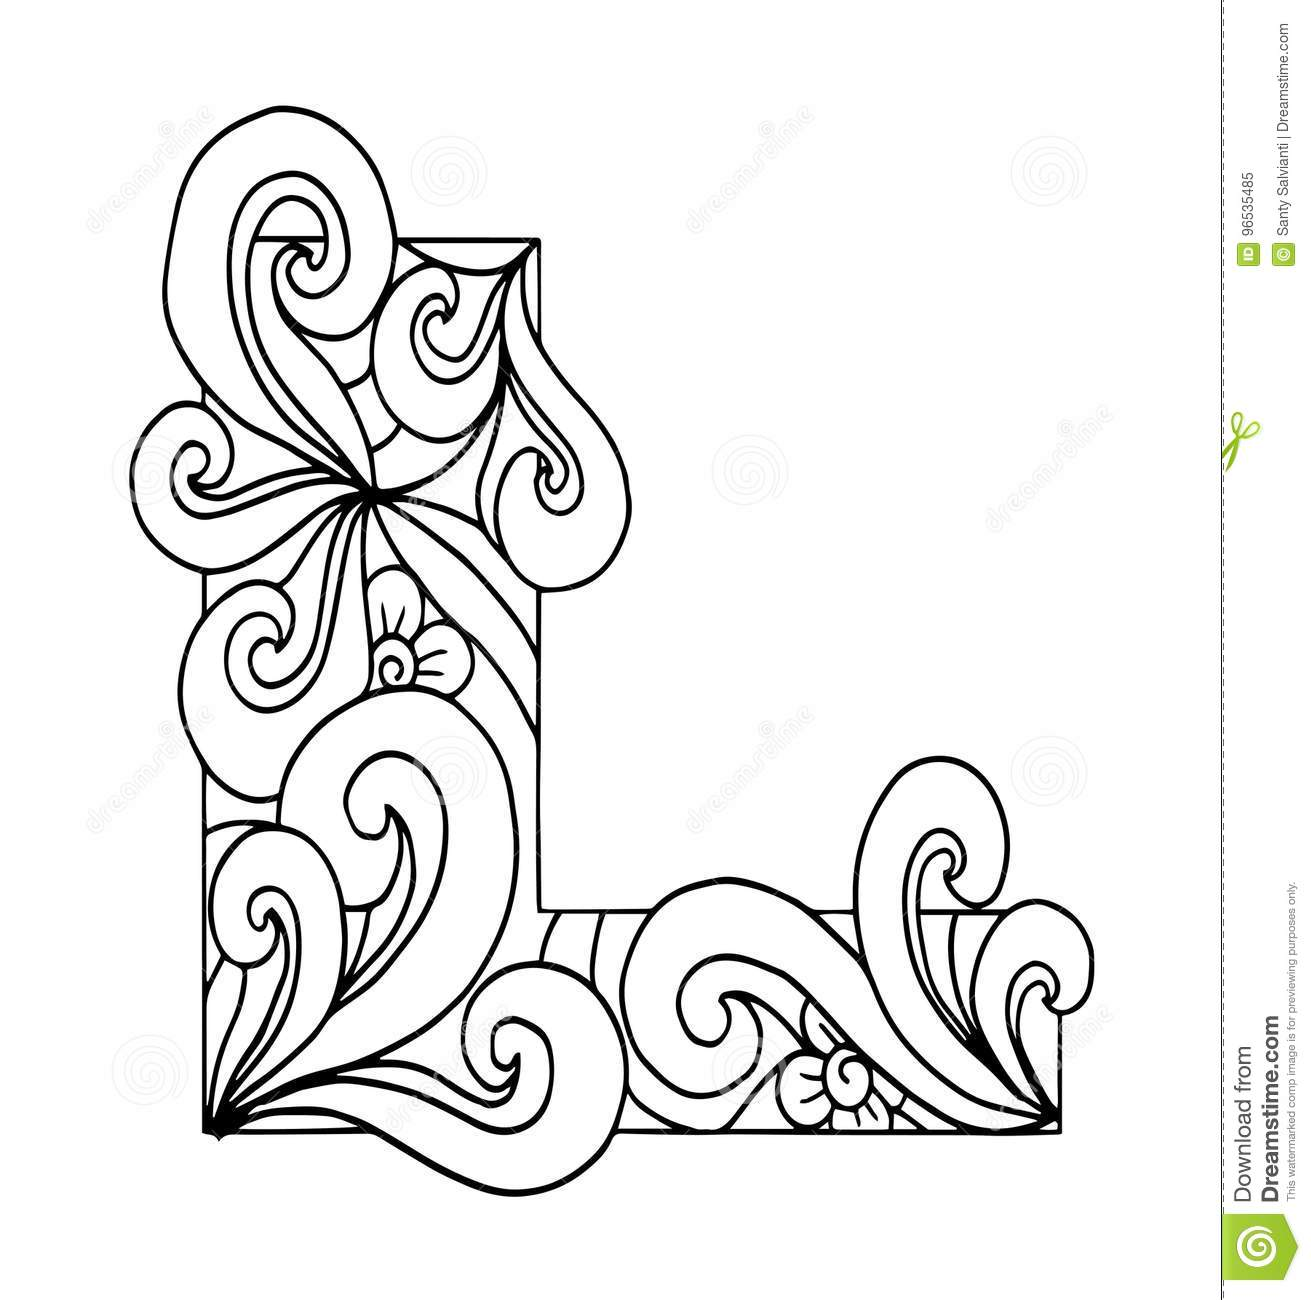 Zentangle Stylized Alphabet Letter L In Doodle Style